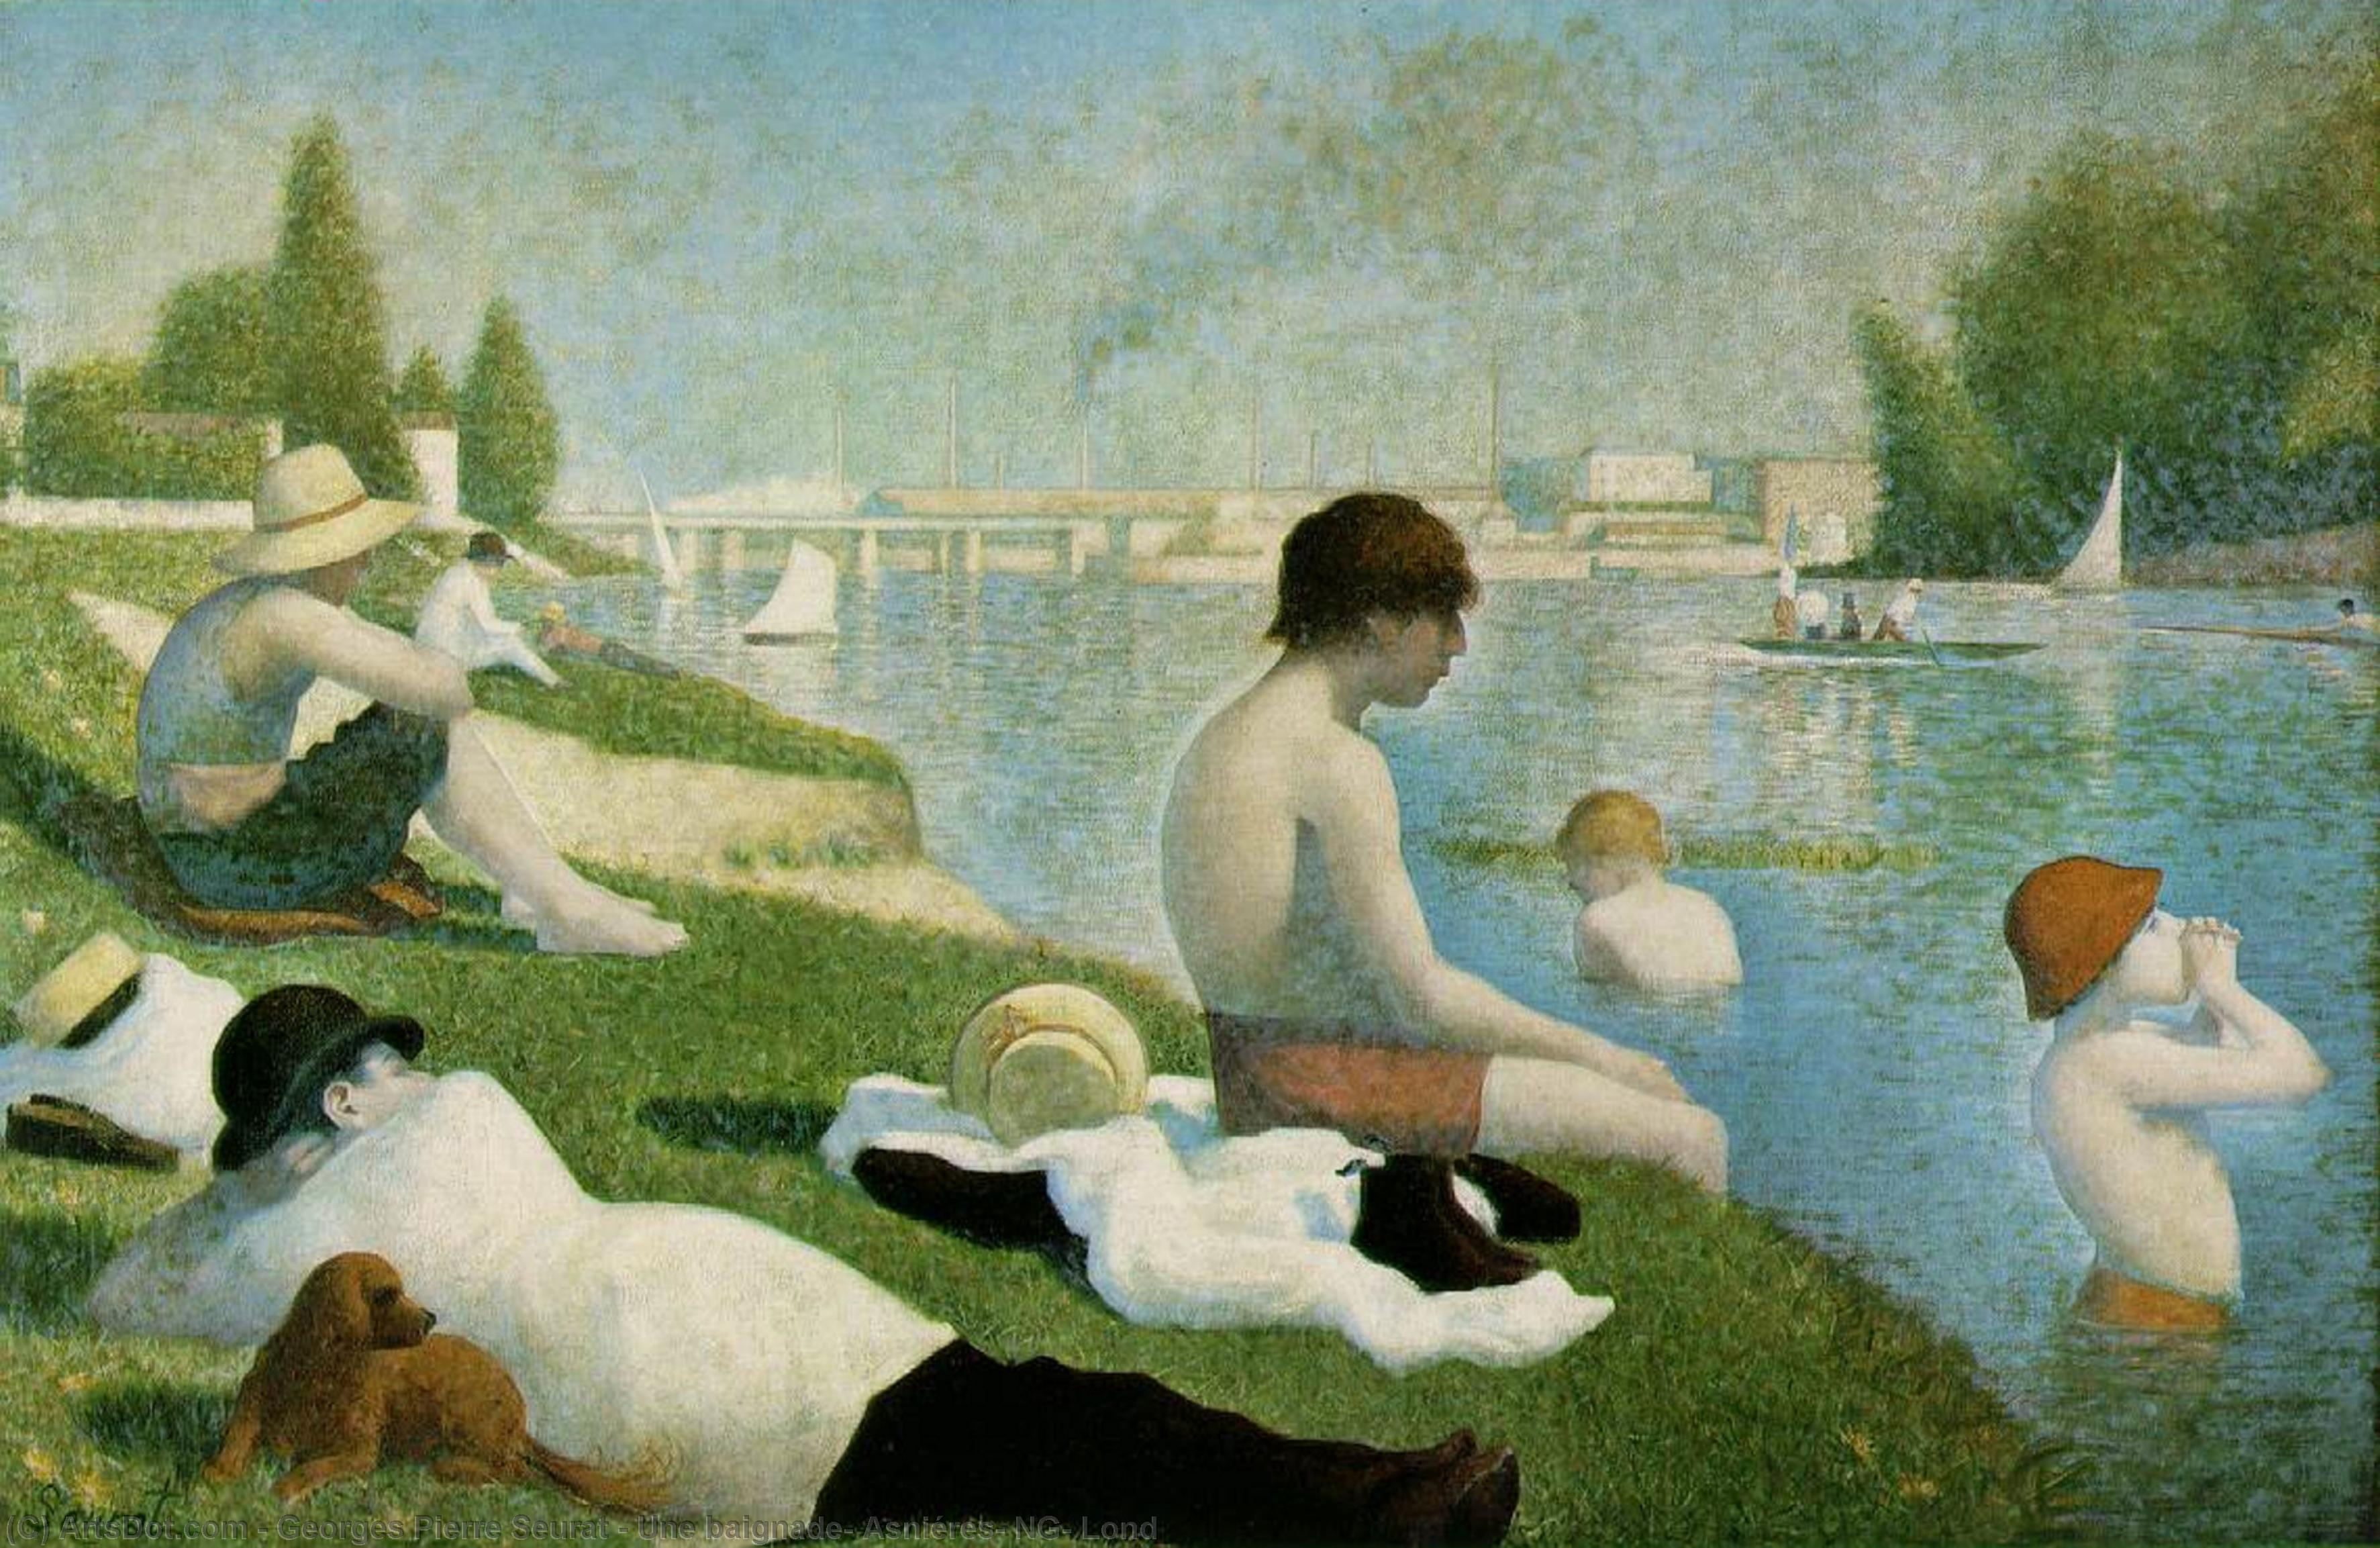 Wikioo.org - The Encyclopedia of Fine Arts - Painting, Artwork by Georges Pierre Seurat - Une baignade, Asniéres, NG, Lond